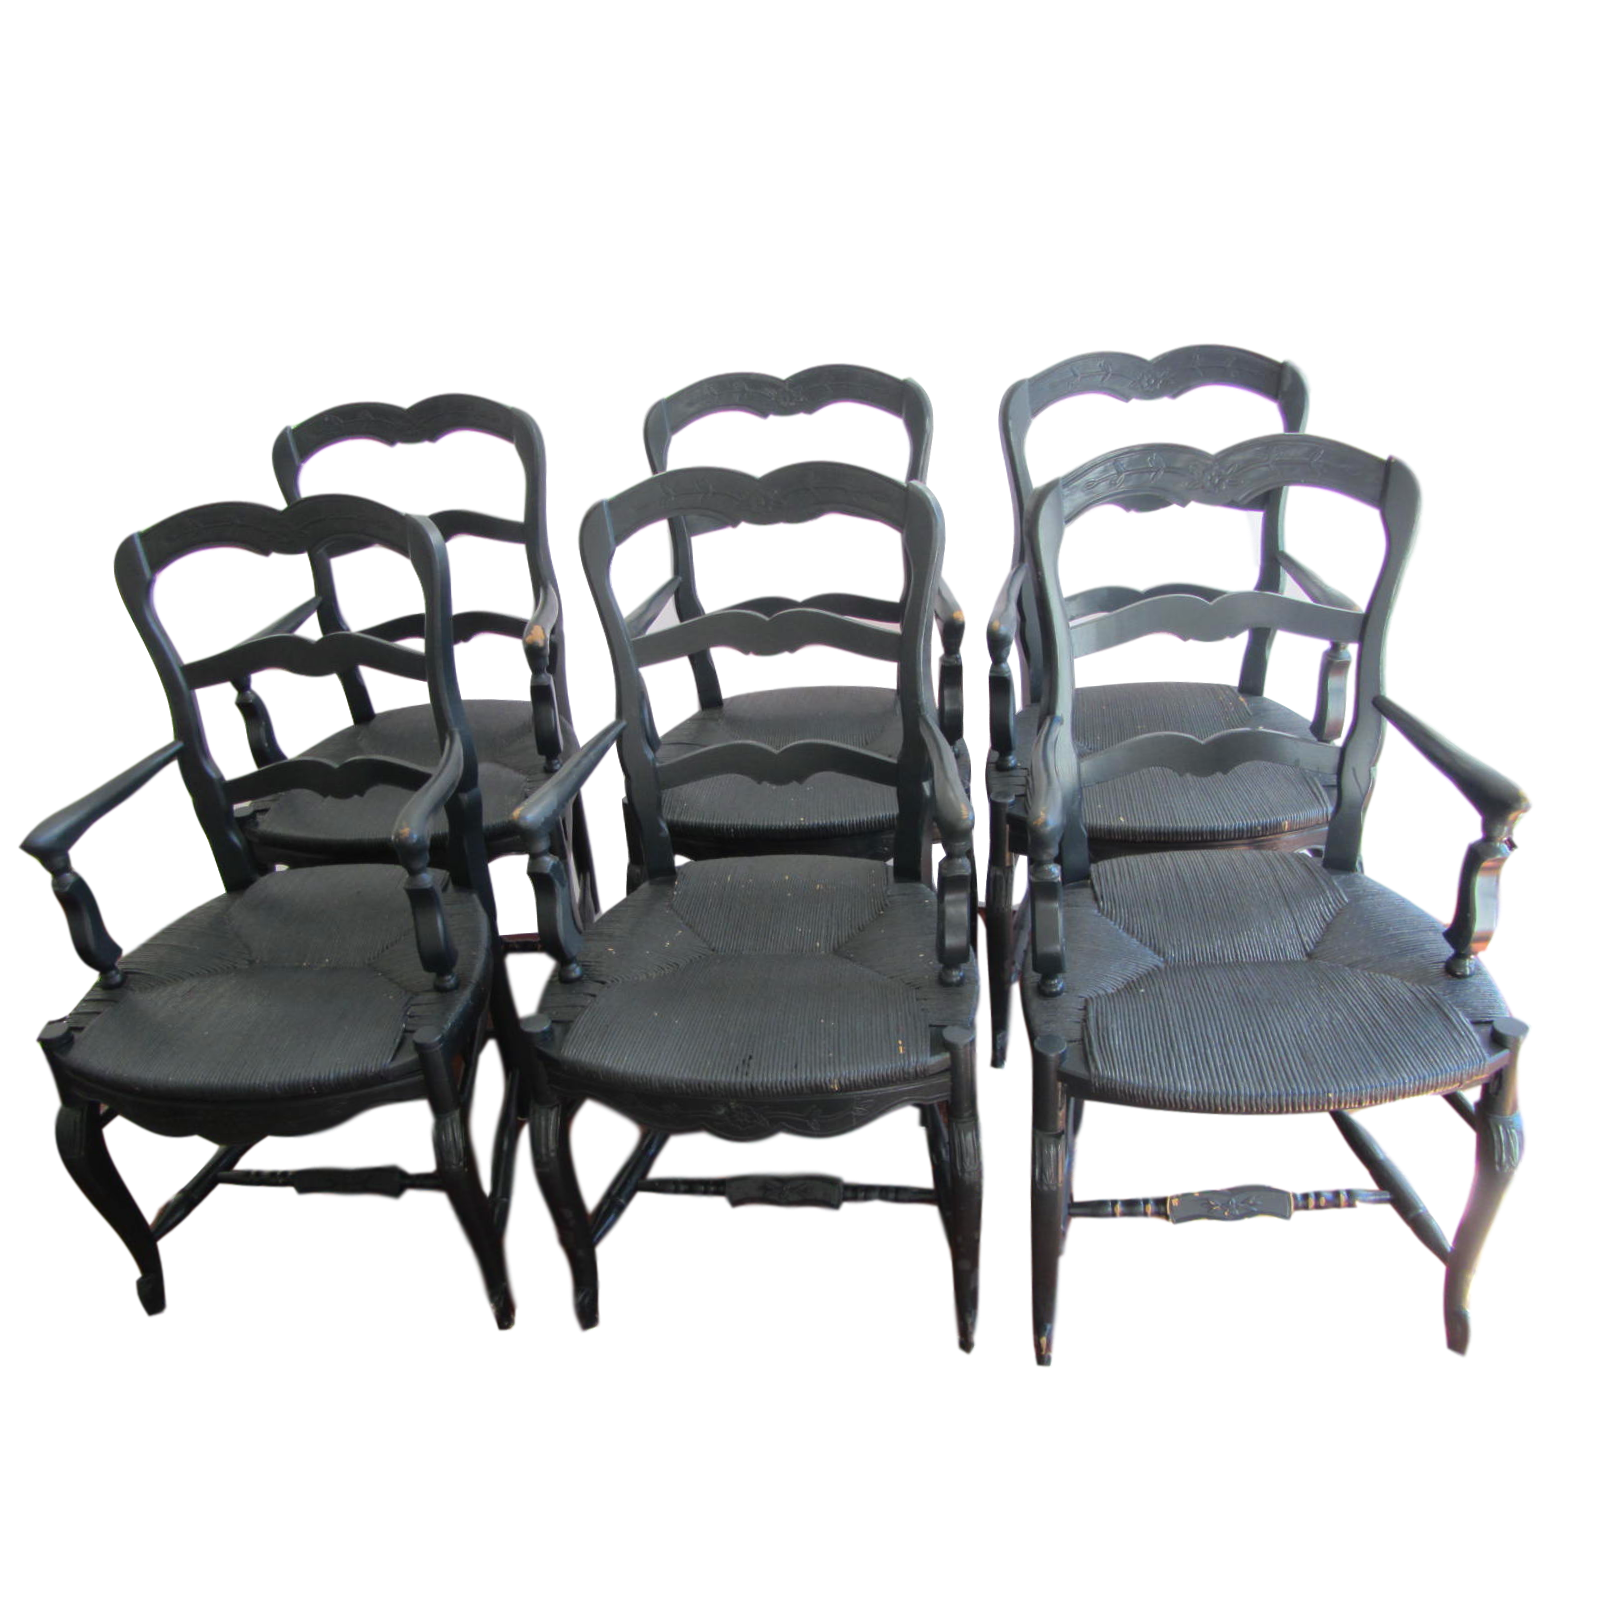 Provencal Black French Dining Chairs Set of 6 Chairish : 661a41db ed78 4c9c 846b 240b22b78eefaspectfitampwidth640ampheight640 from www.chairish.com size 640 x 640 jpeg 42kB